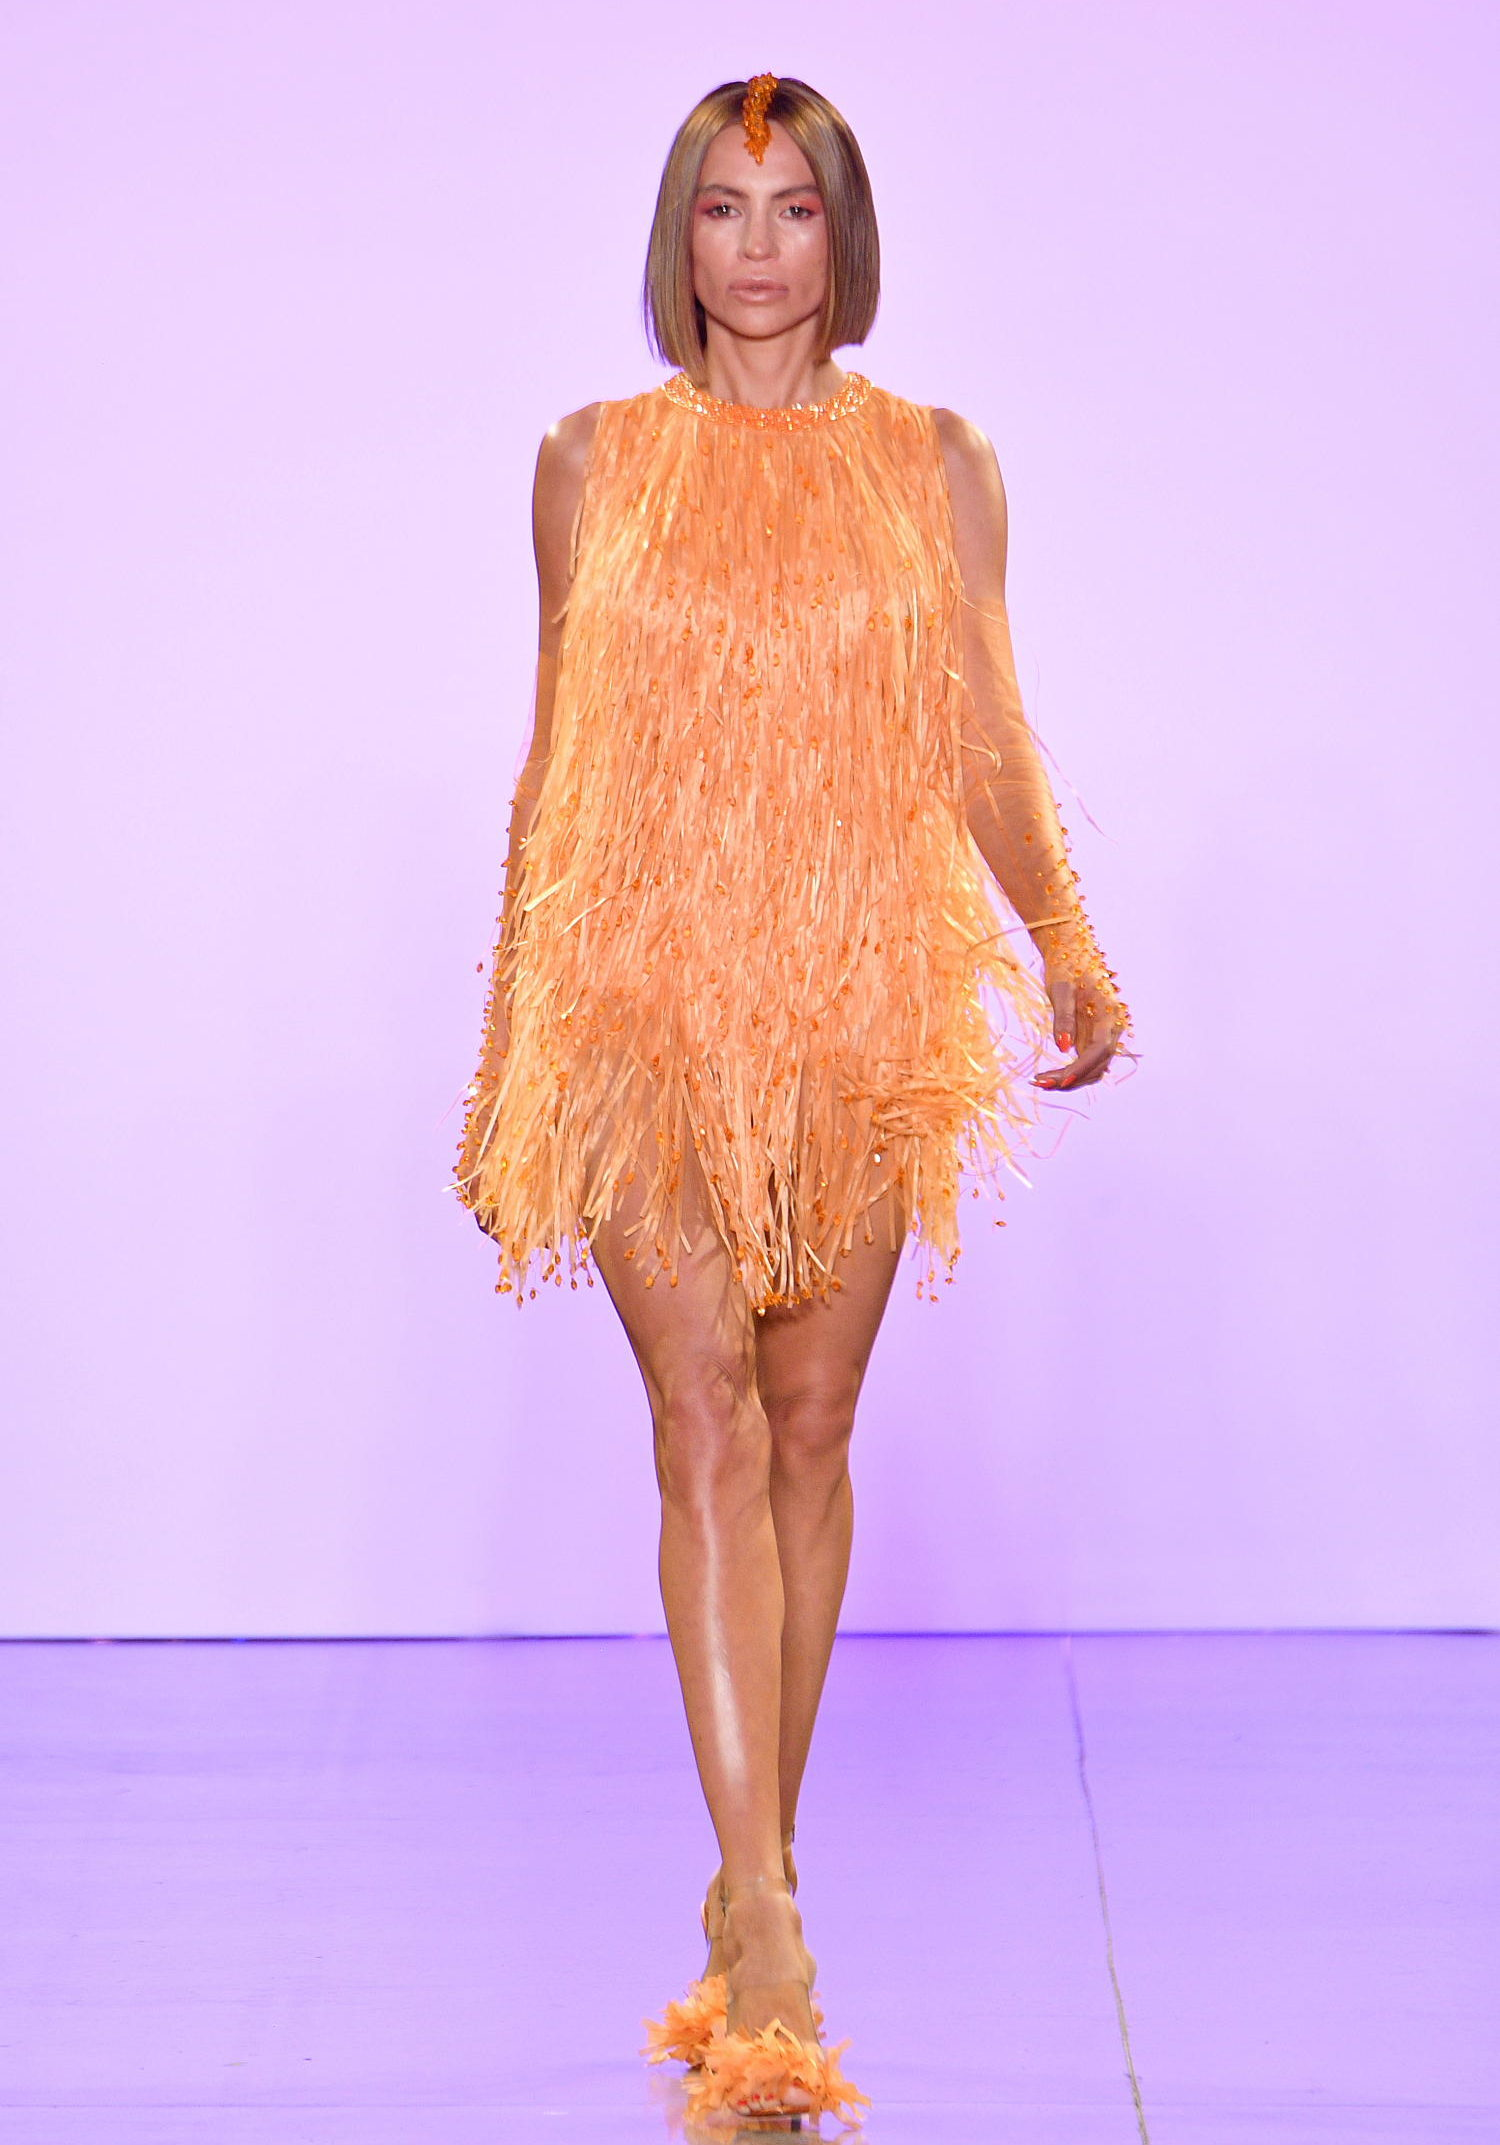 NEW YORK, NEW YORK - SEPTEMBER 05: A model walks the runway for Afffair S/S20 during New York Fashion Week: The Shows at Gallery II at Spring Studios on September 05, 2019 in New York City. (Photo by Dia Dipasupil/Getty Images for Afffair)